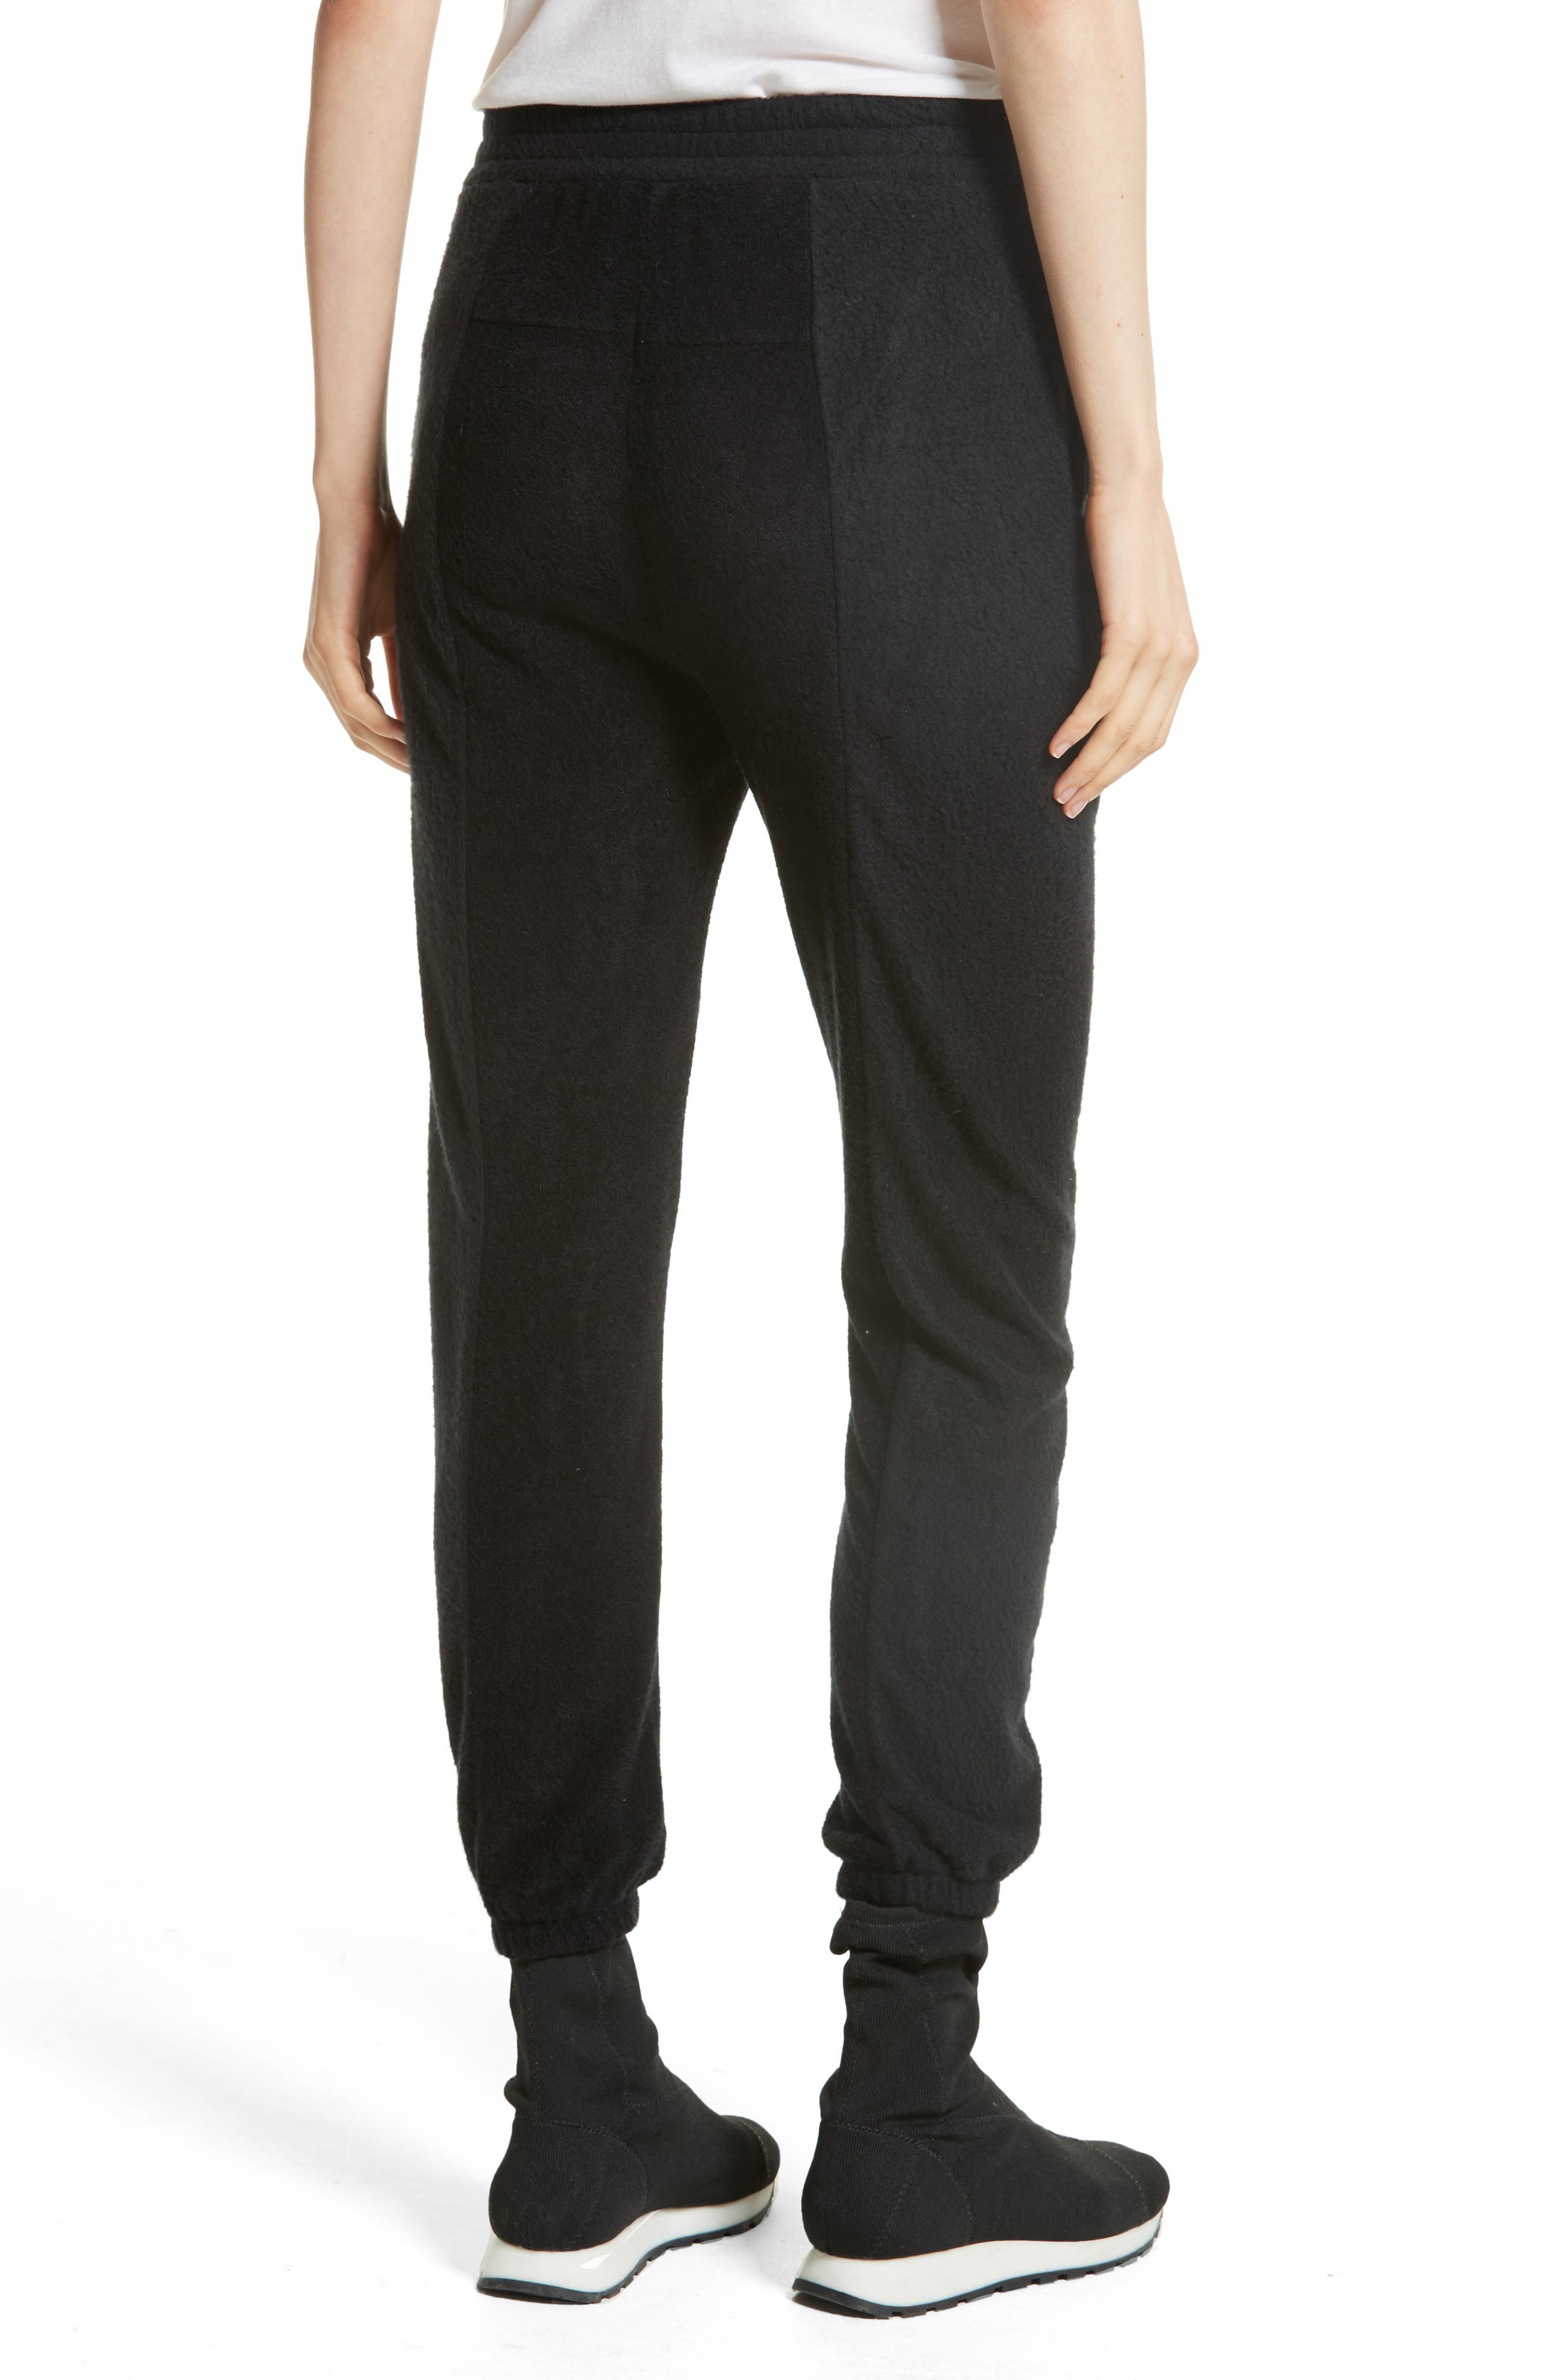 All Day All Night Jogger Pants,                             Alternate thumbnail 2, color,                             001